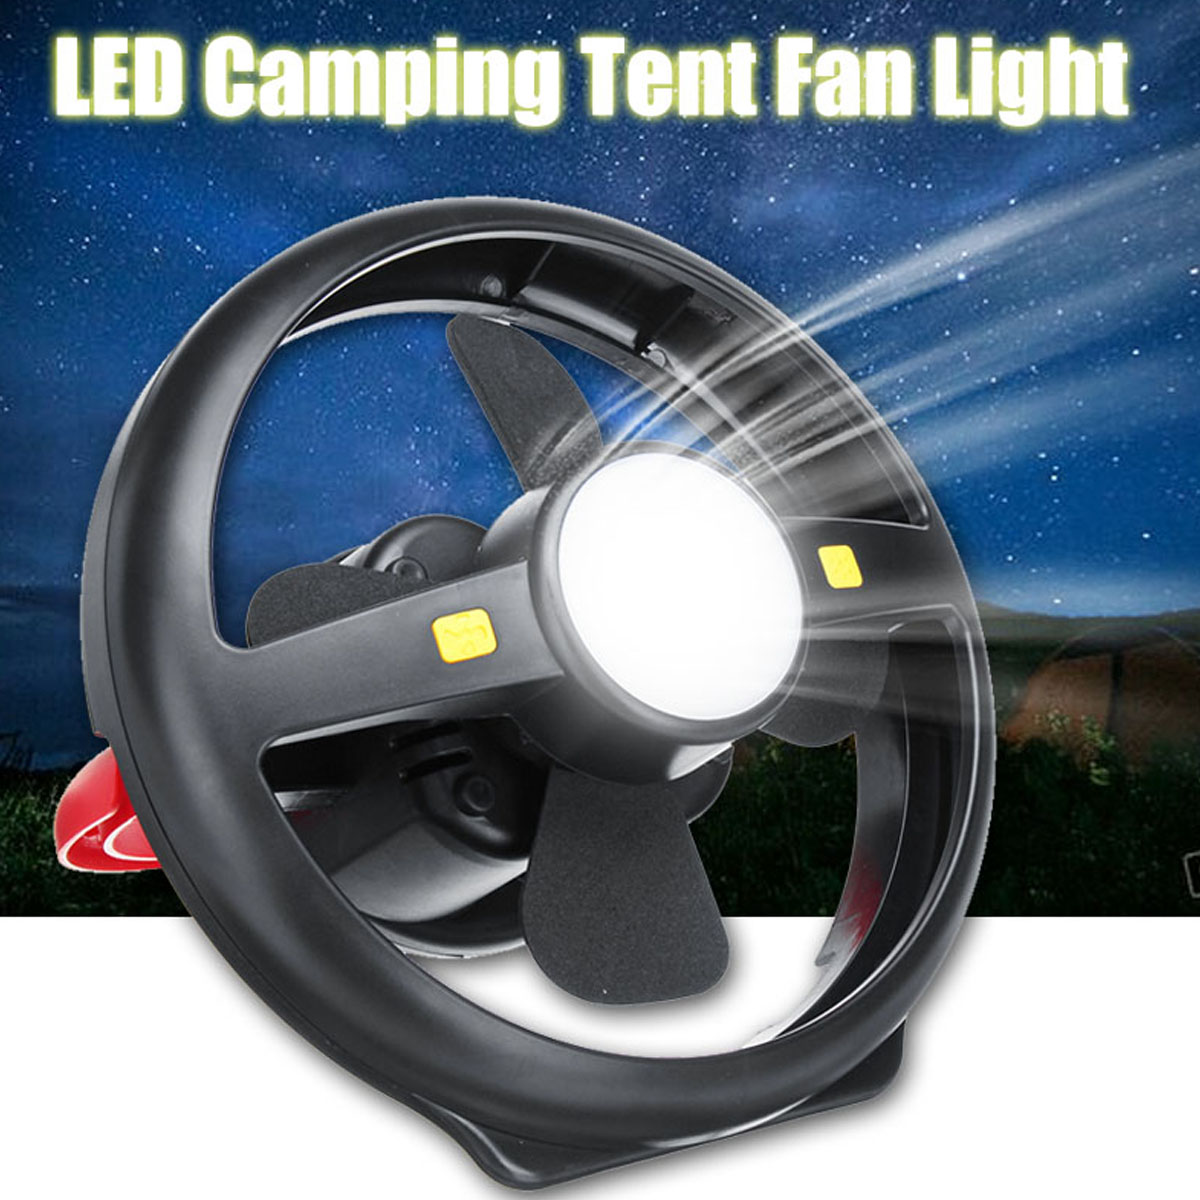 Flasher Mobile Power Bank Flashlight Usb Port Camping Tent Light Portable Lamp Smuxi Outdoor Rechargeable Hanging Fan Emergency For